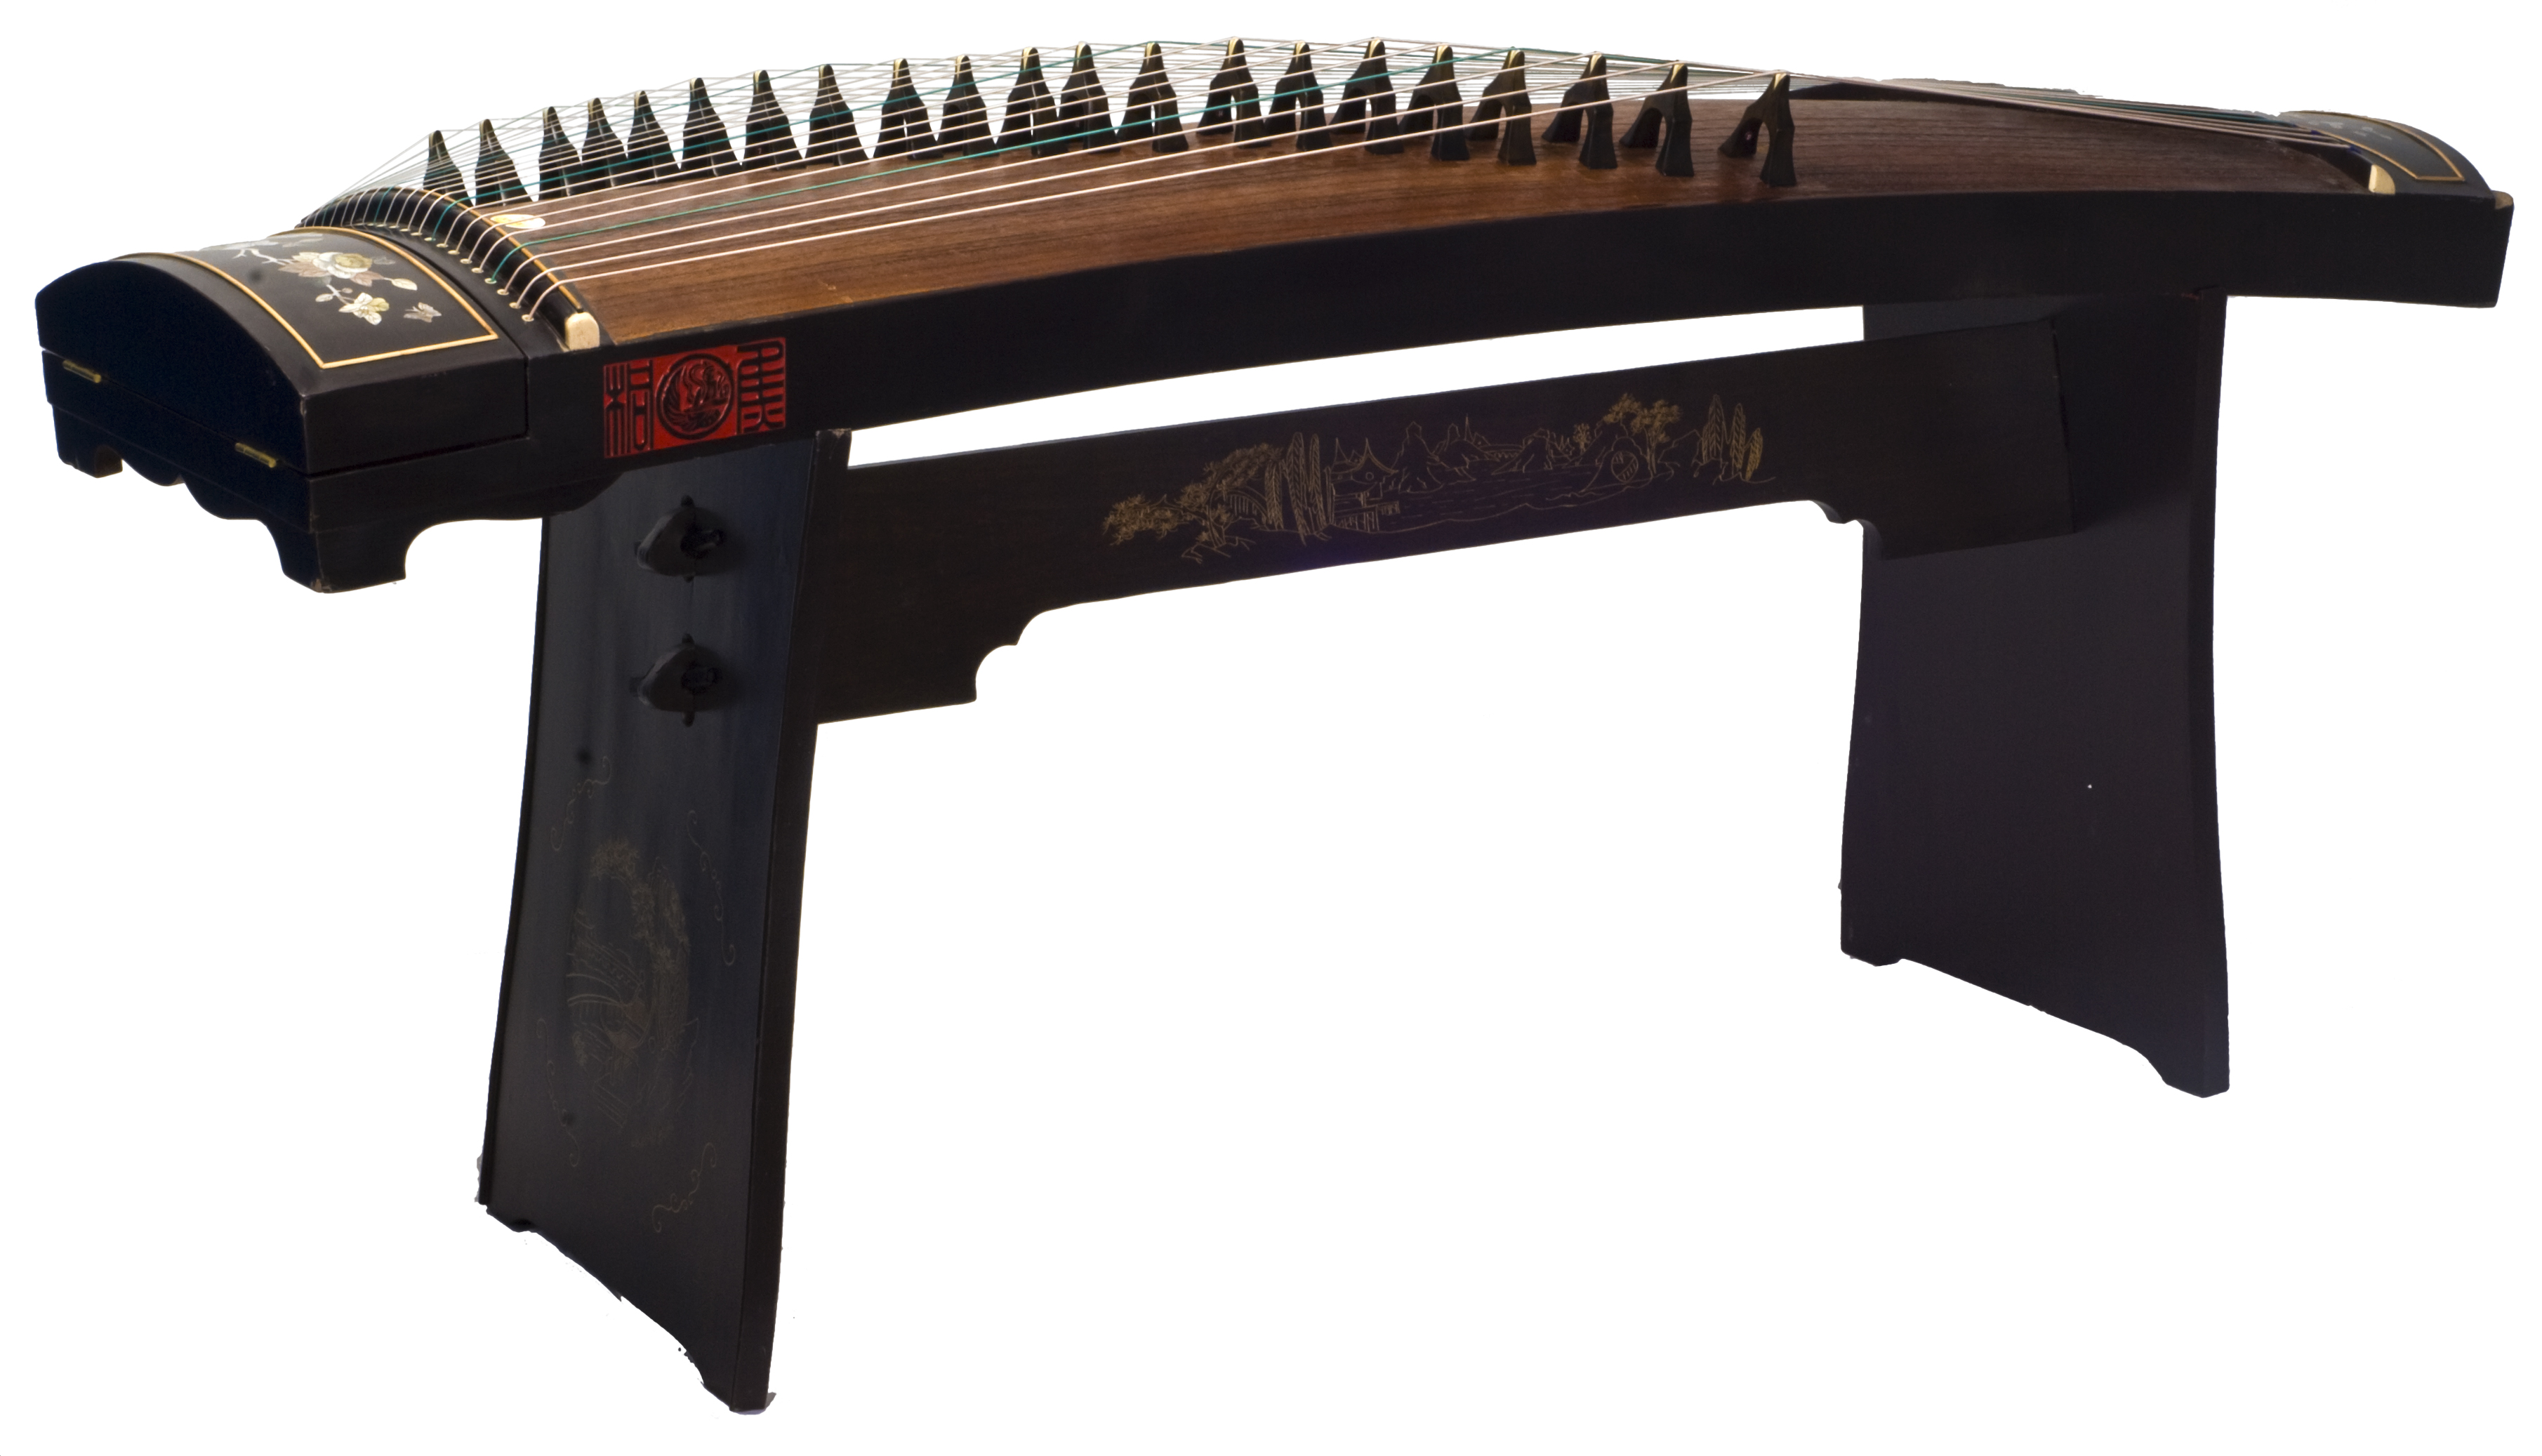 Guzheng - Sound, Light, Rental, Event, Media, Studio ...